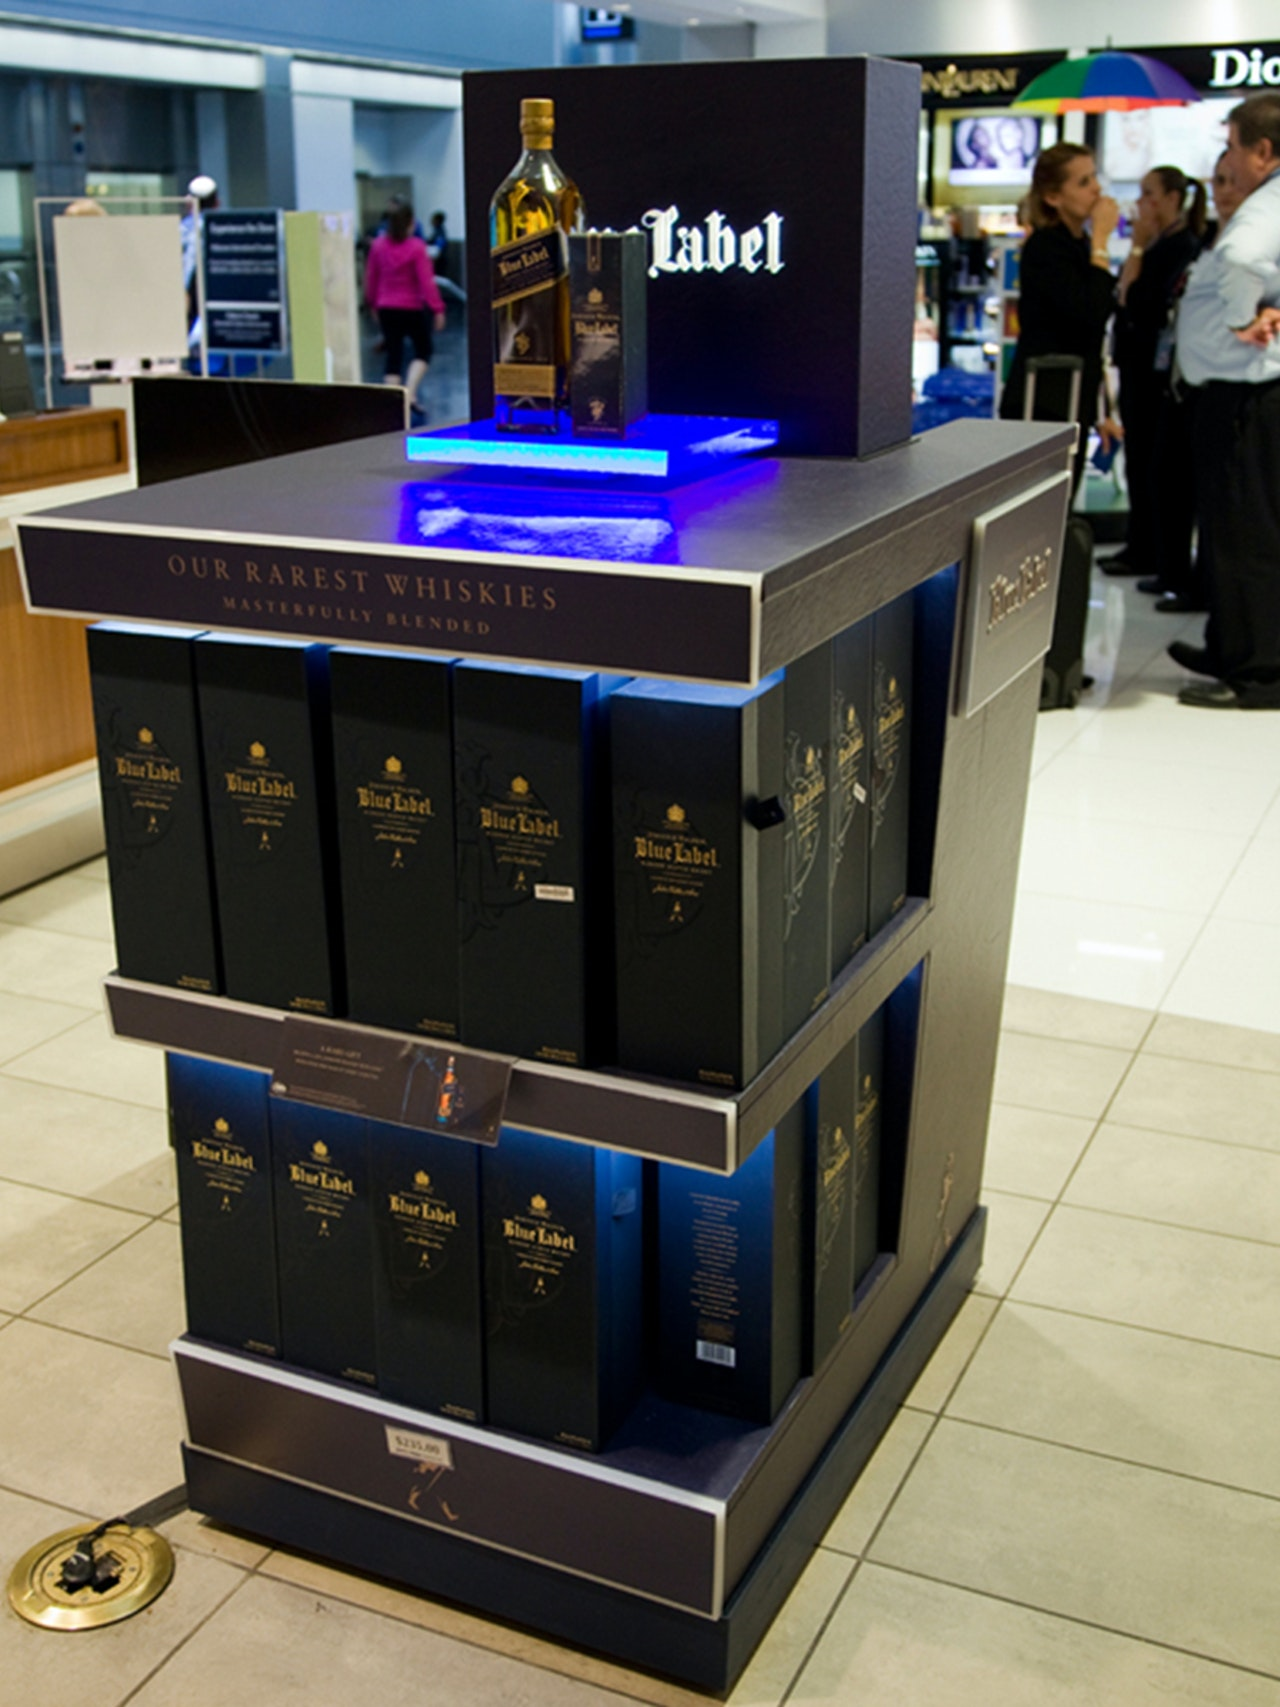 JOHNNIE WALKER BLUE LABEL DISPLAYS